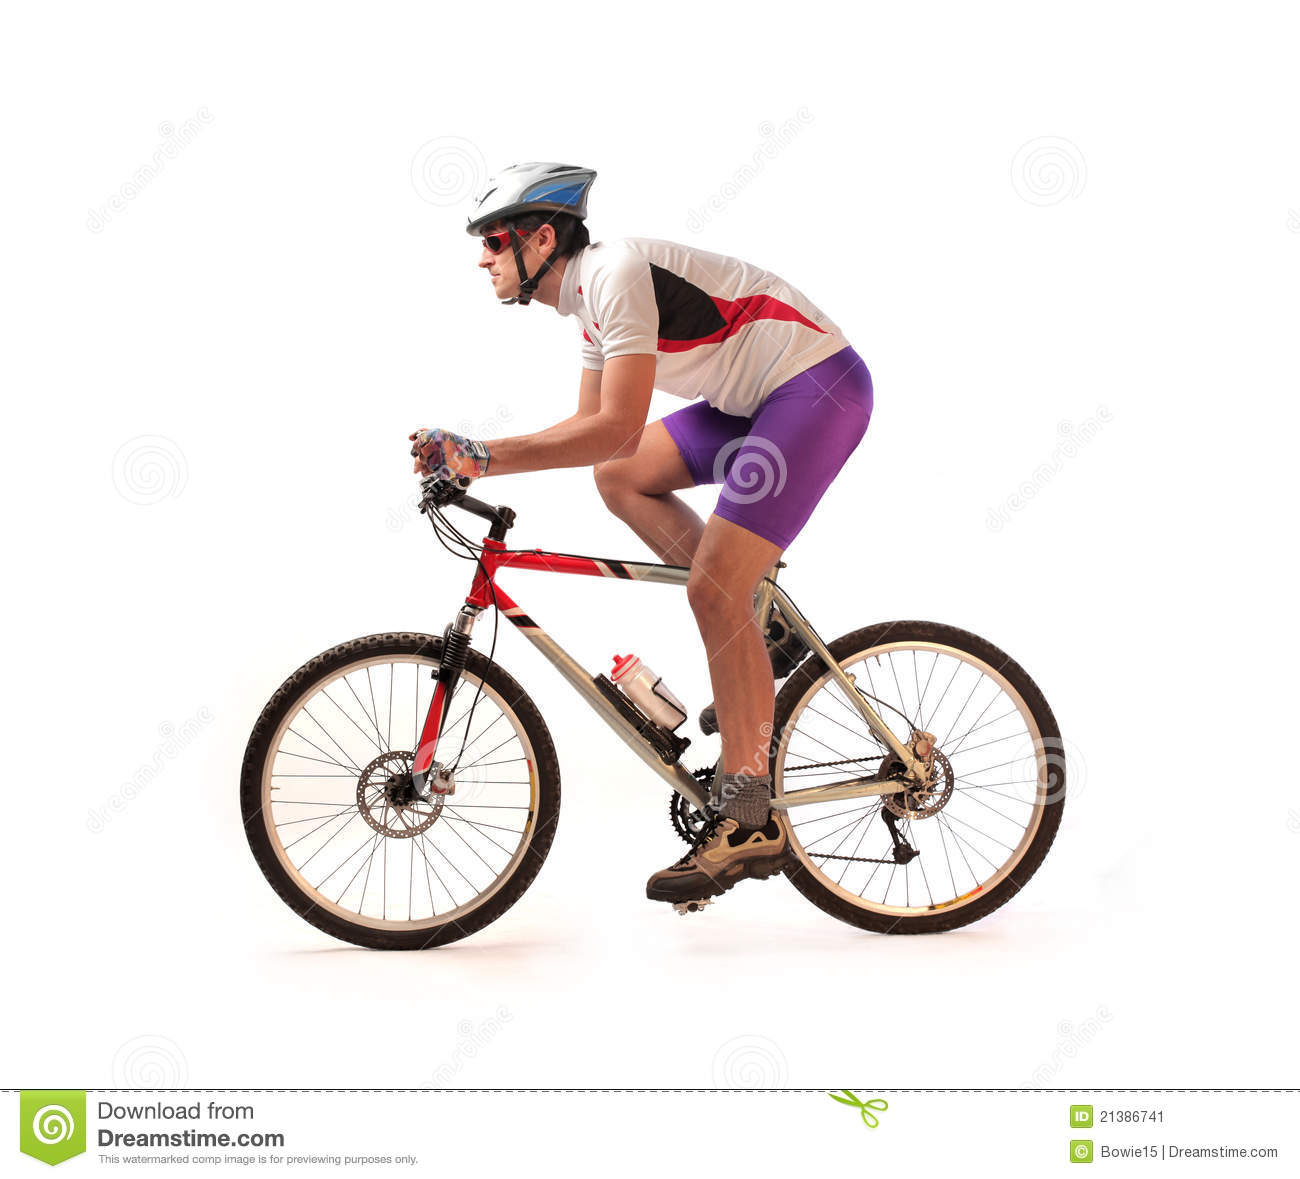 Portrait of a cyclist on a mountain bike.